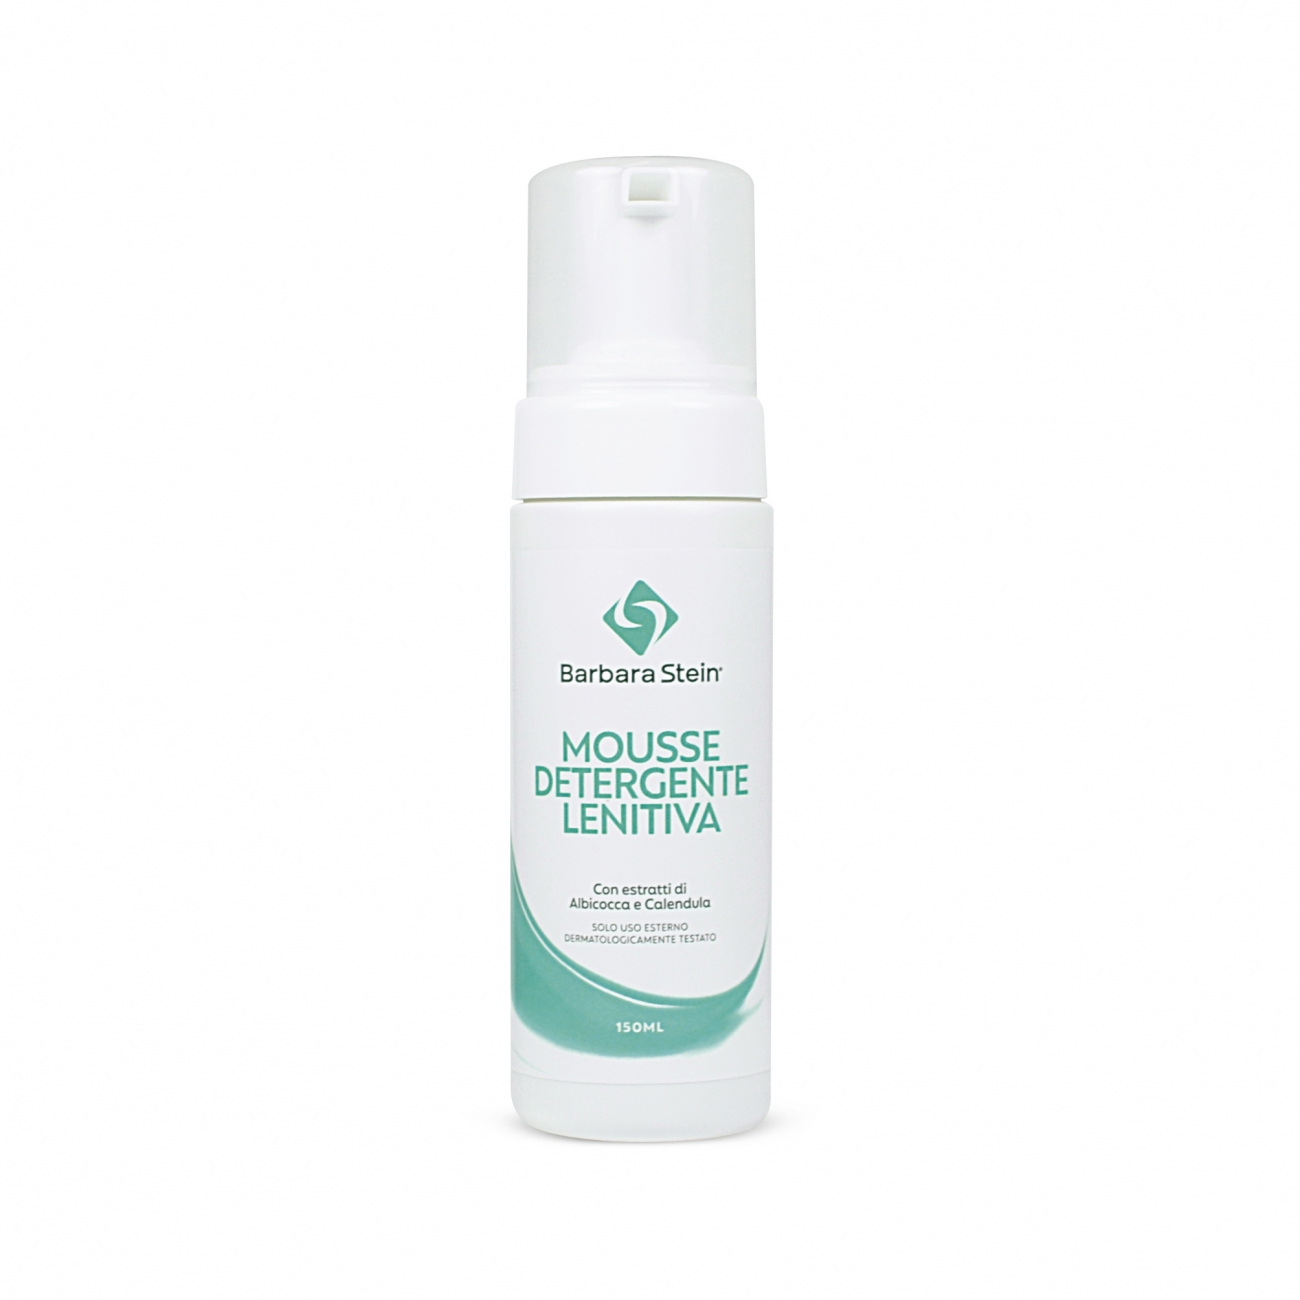 SOOTHING CLEANSING MOUSSE (150 ml)